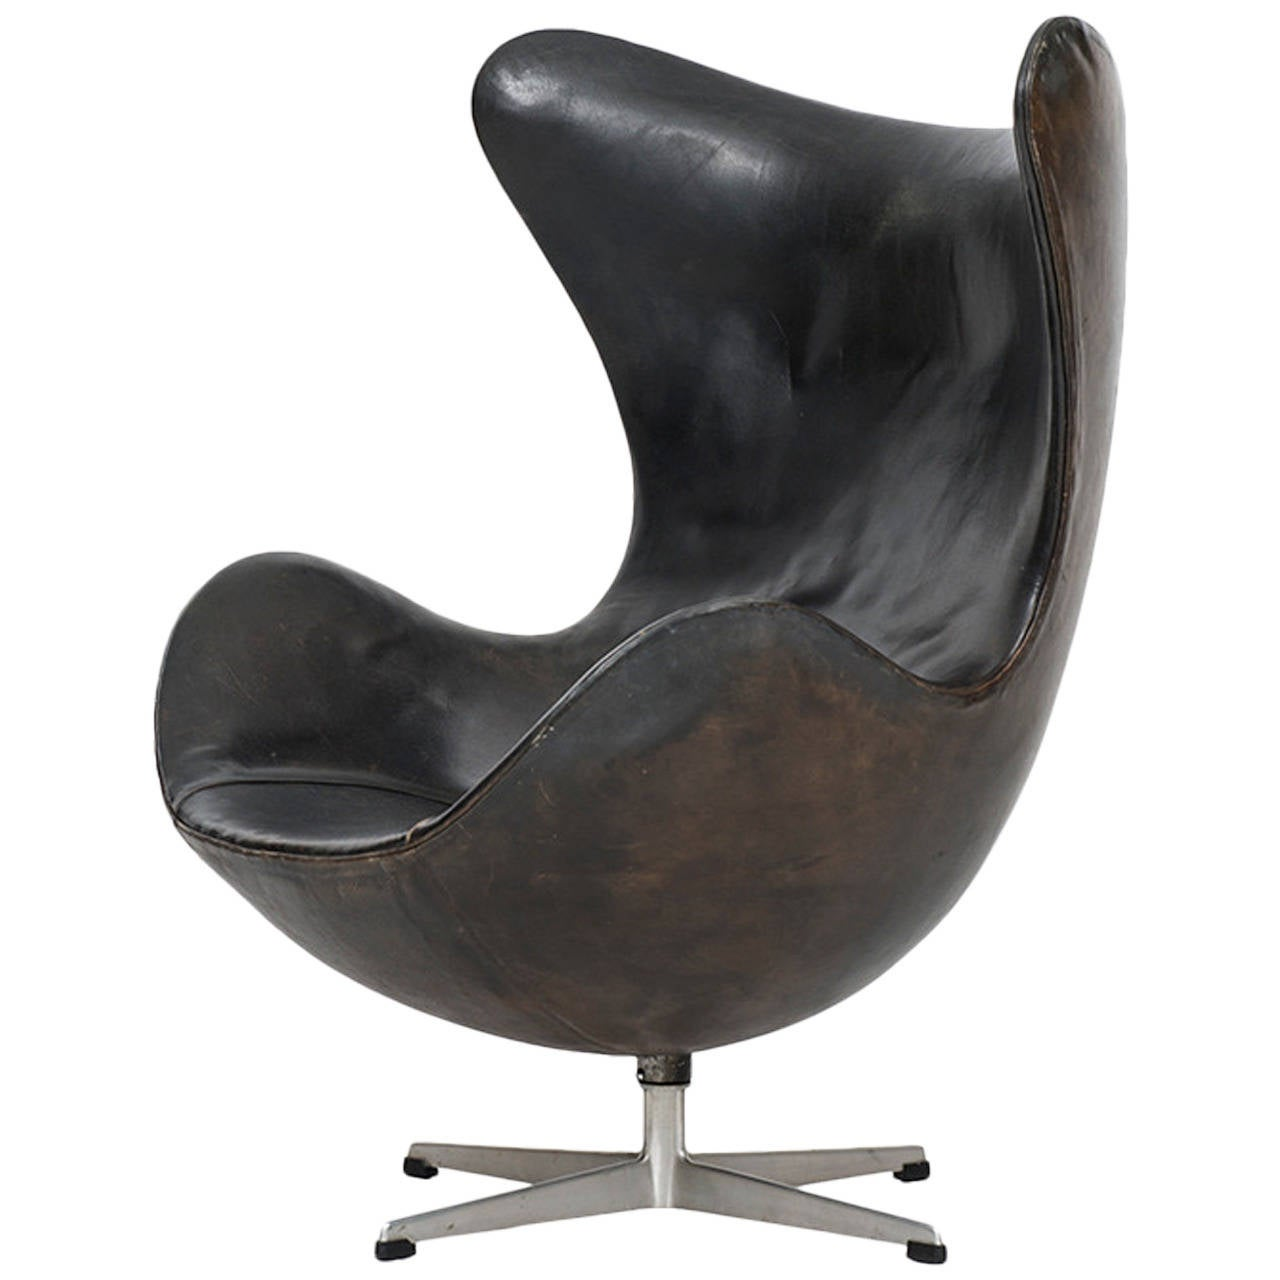 arne jacobsen early egg chair in original black leather by. Black Bedroom Furniture Sets. Home Design Ideas